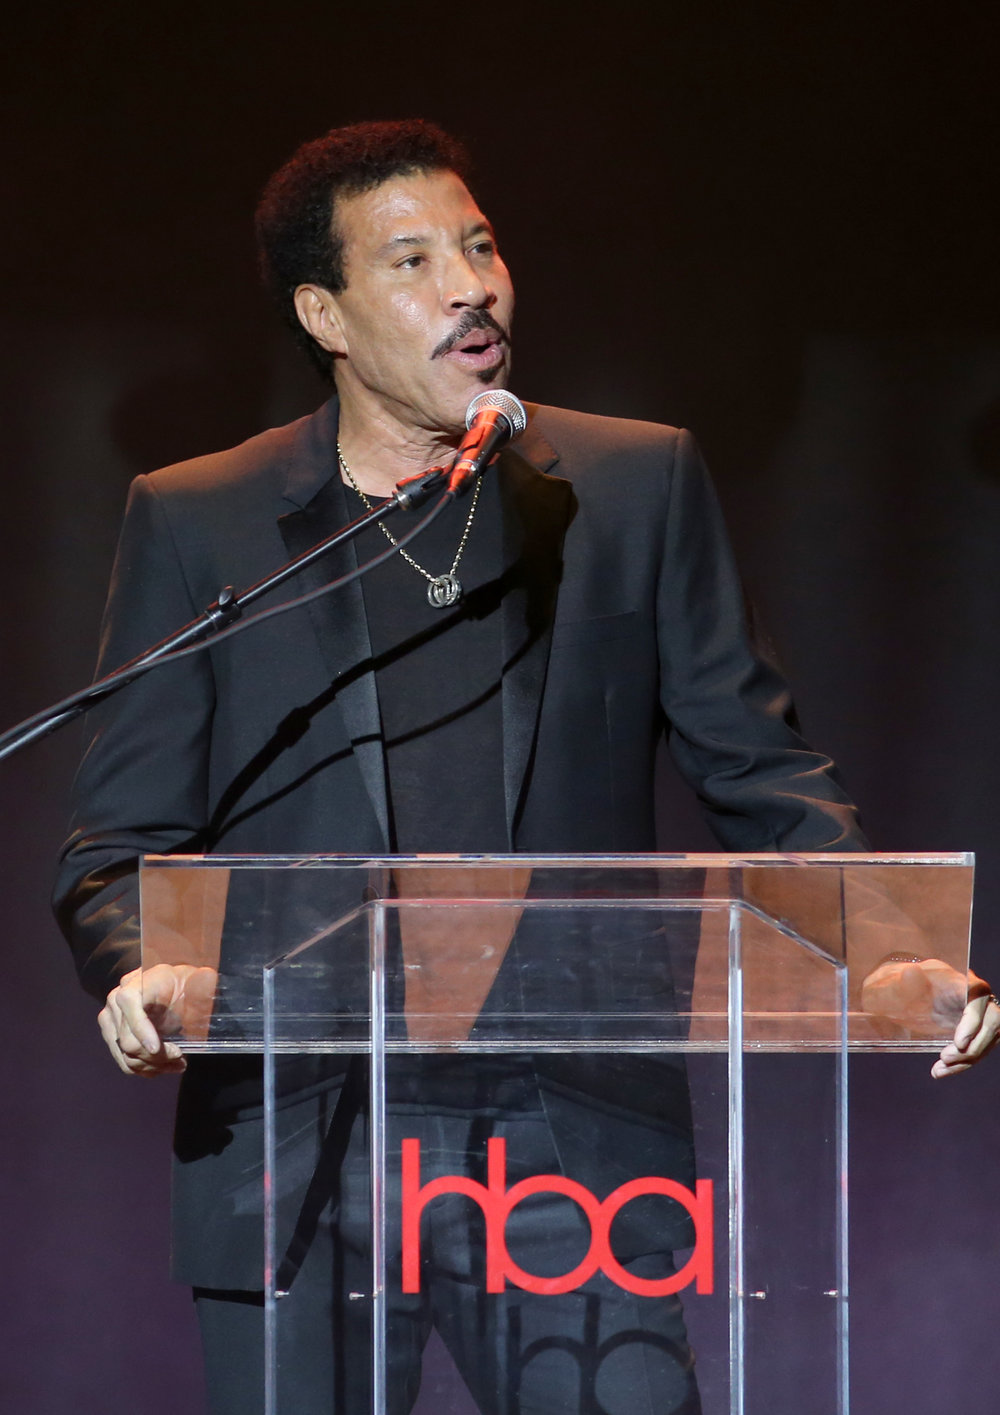 Smokey Robinson and Lionel Richie | Feb 25, 2018, Hollywood Beauty Awards held at the Avalon